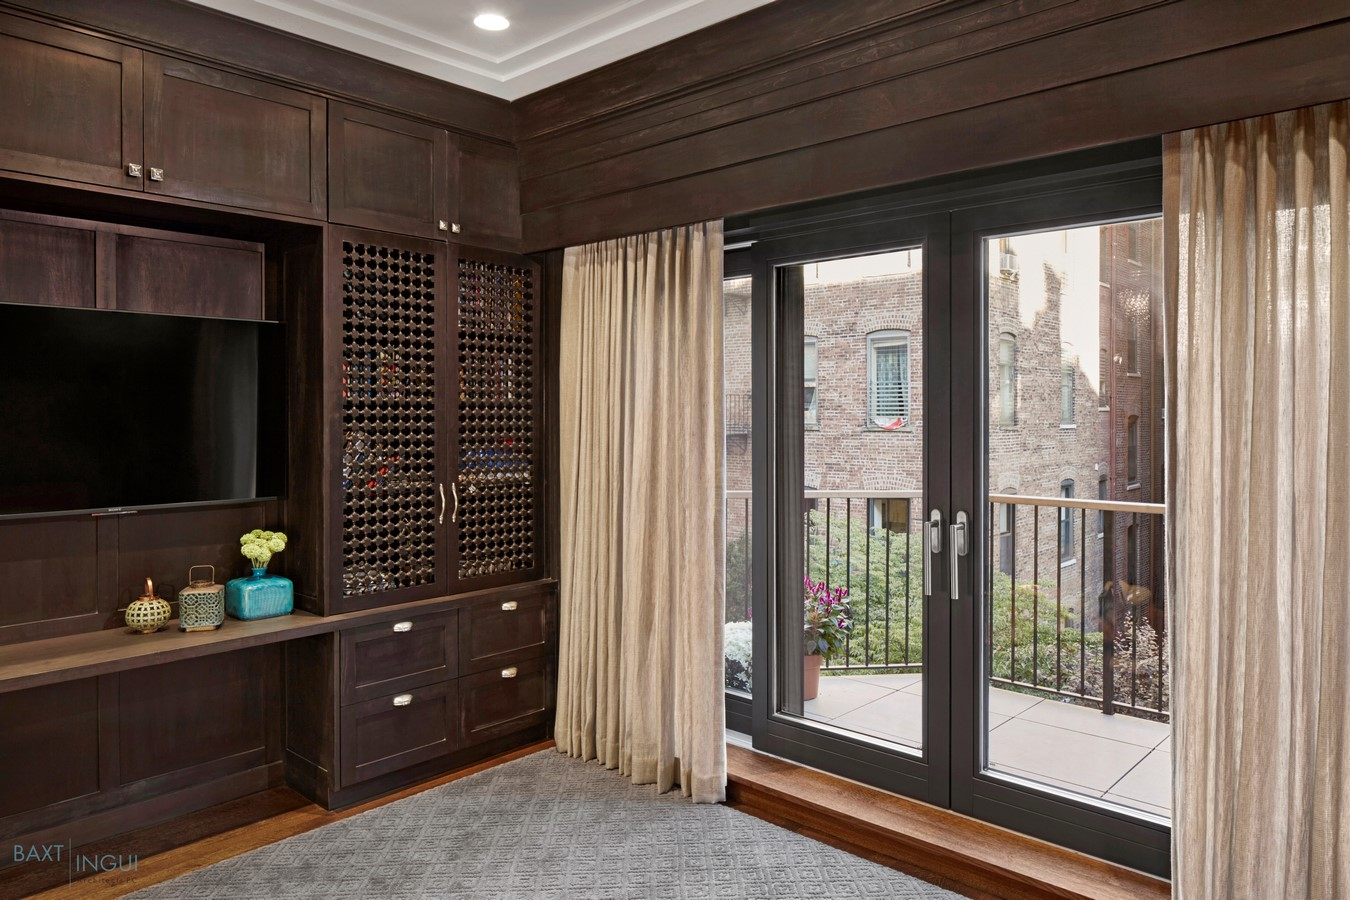 5166 Brooklyn Heights Passive Townhouse by Baxt Ingui: Sheet 3